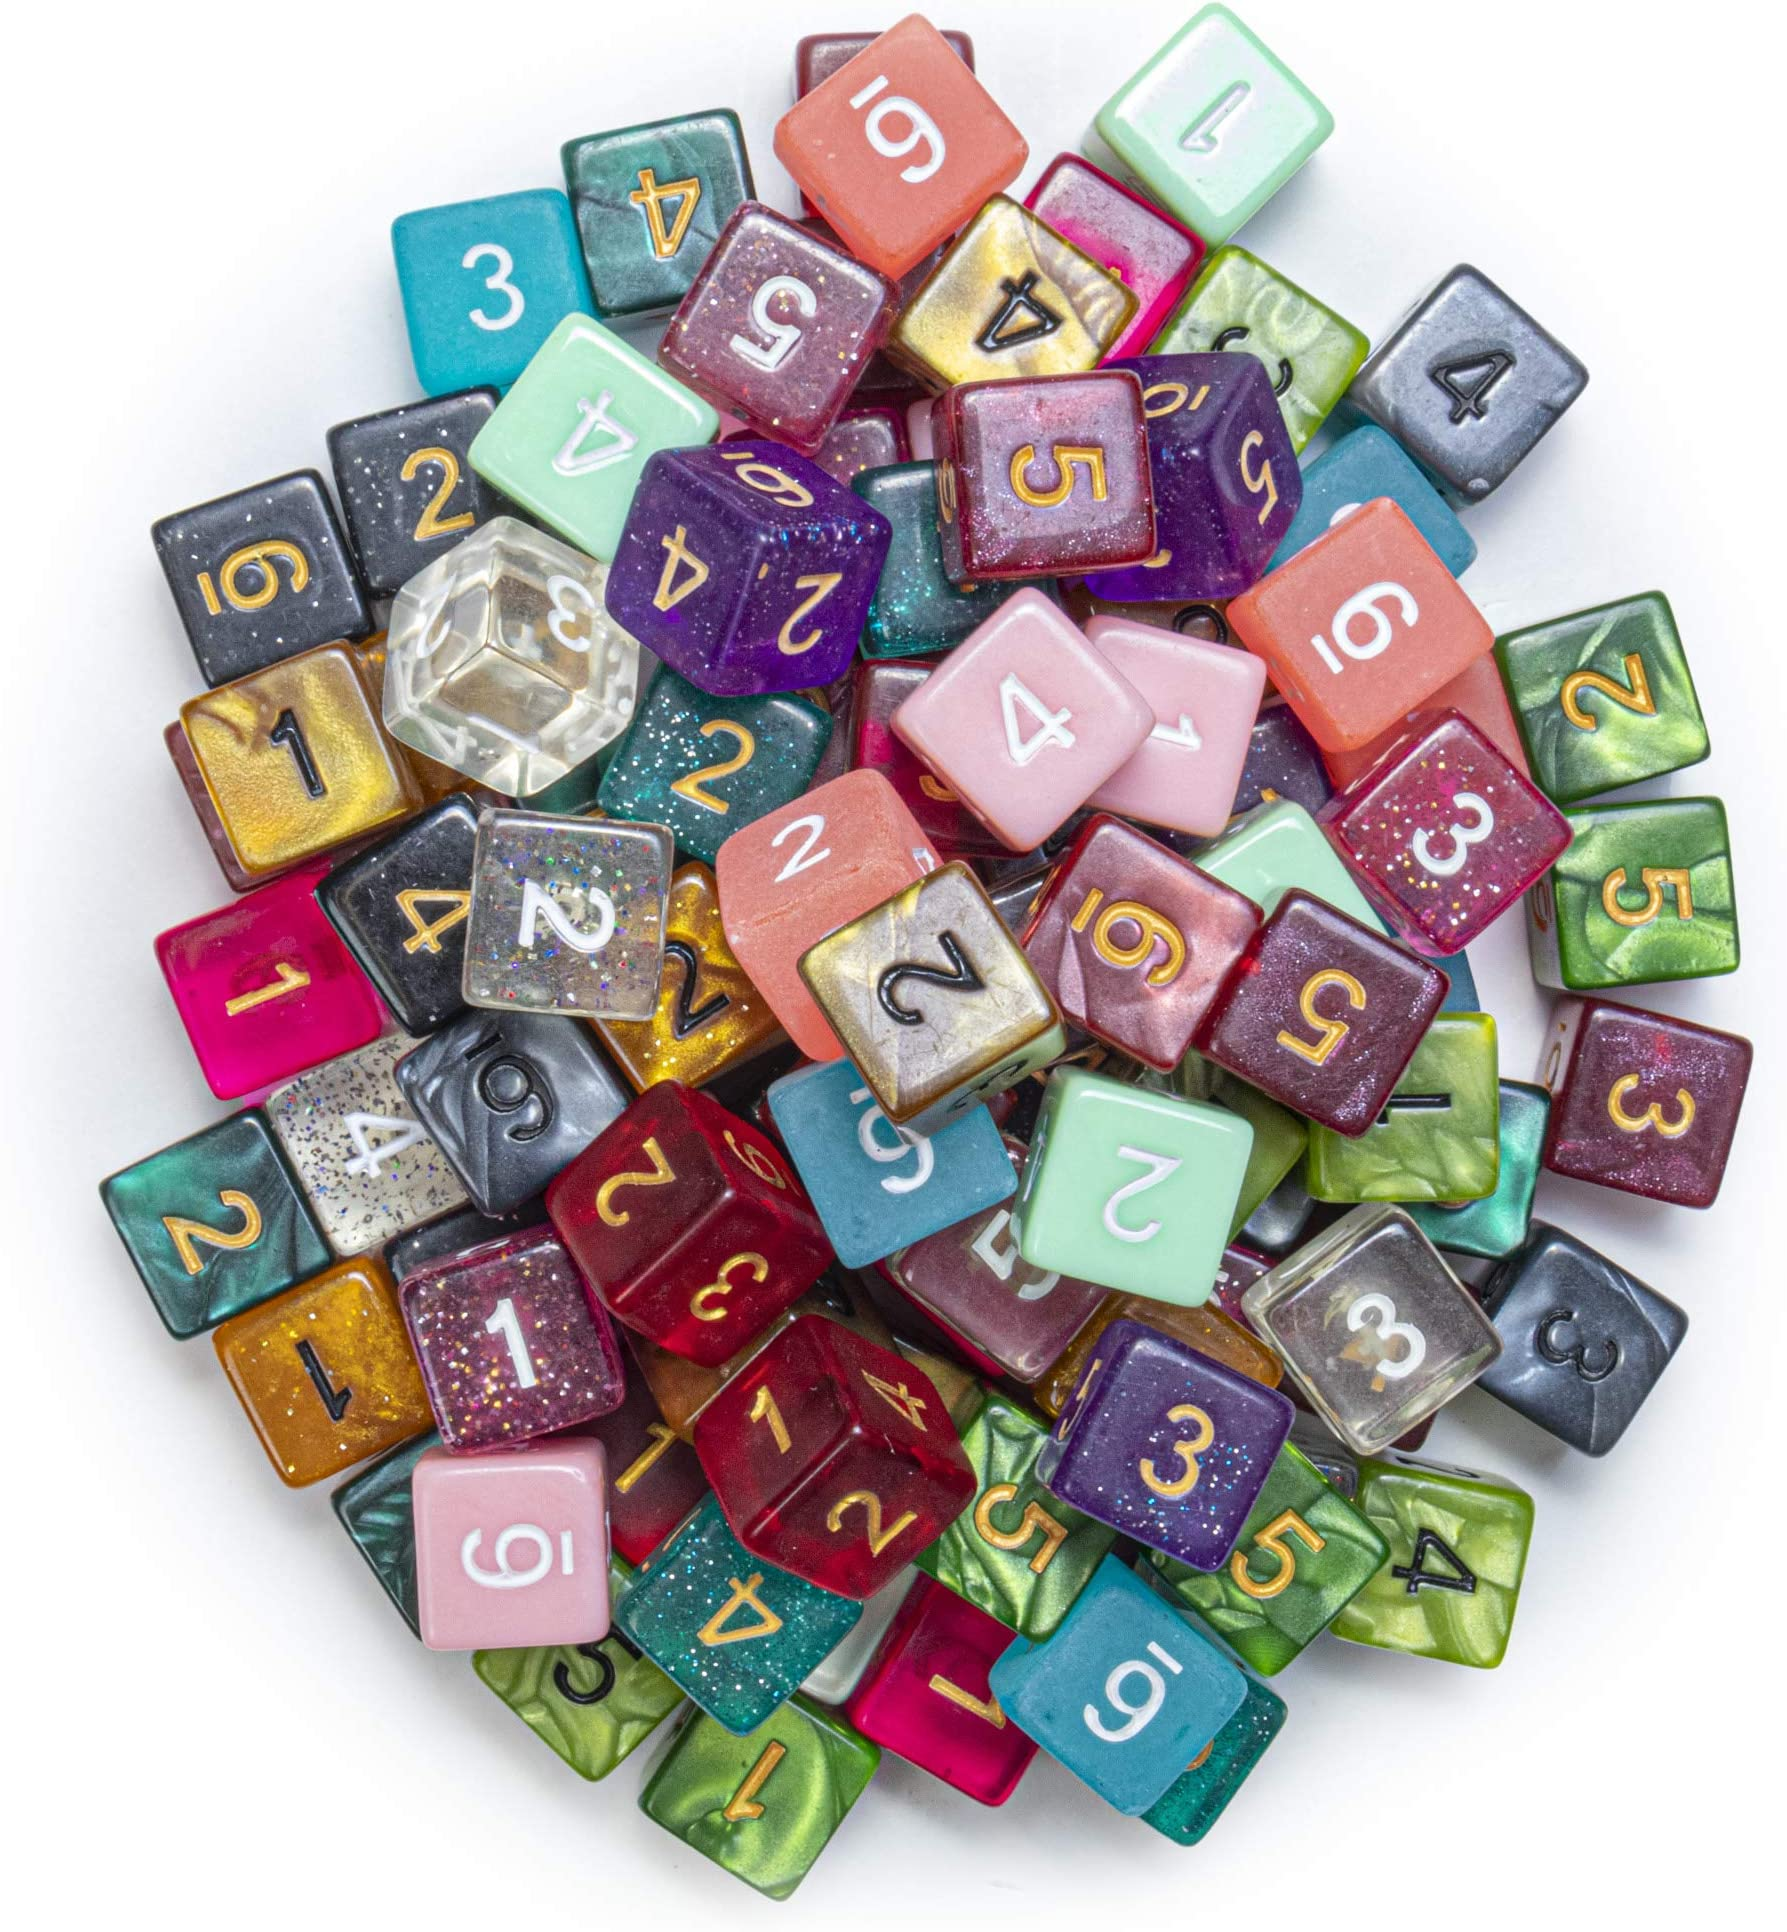 Wiz Dice 100+ Pack of Random D6 Polyhedral Dice in Multiple Colors